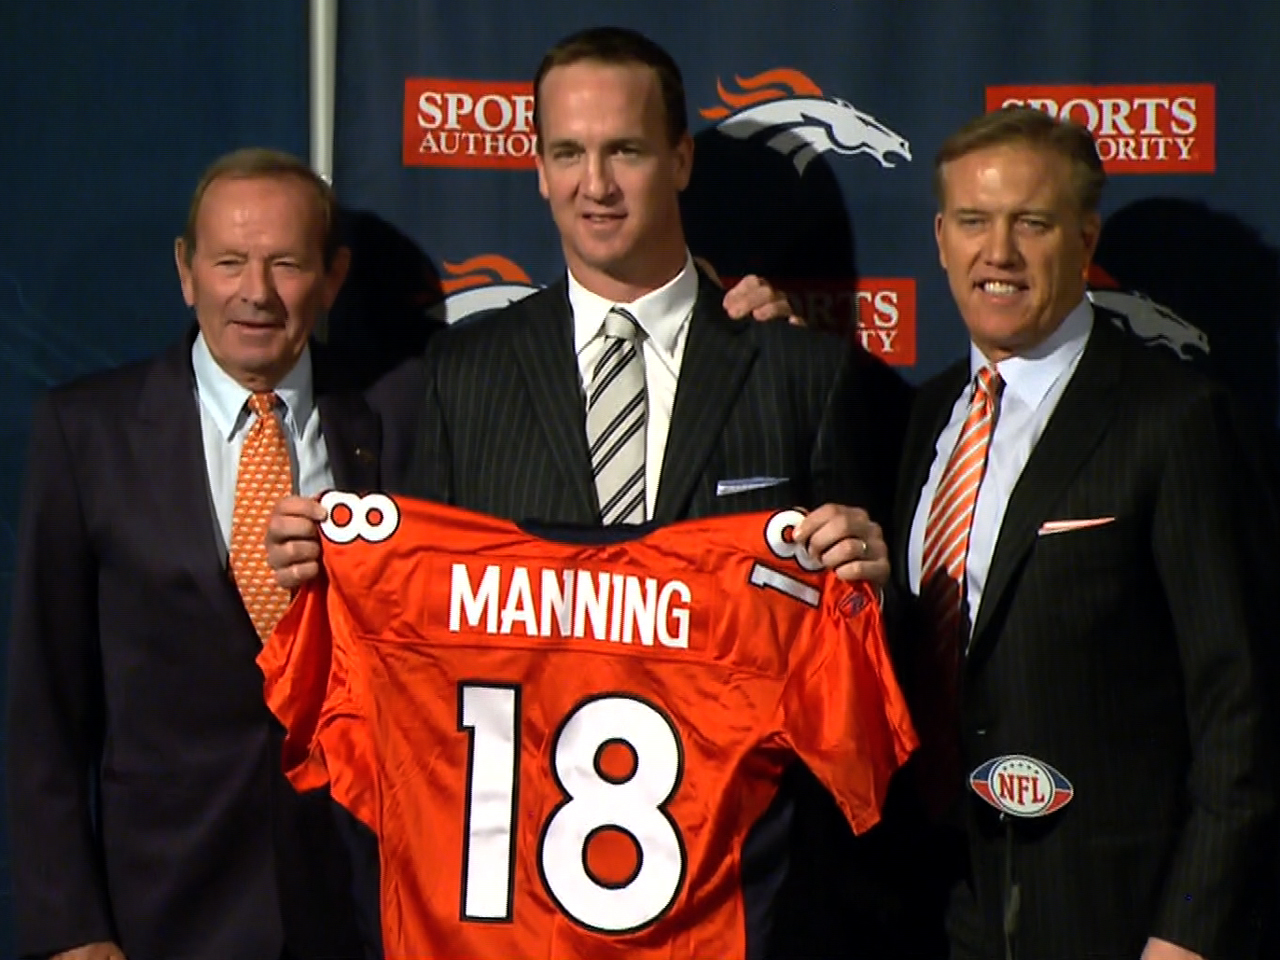 It S Official Peyton Manning Goes To Broncos Cbs News